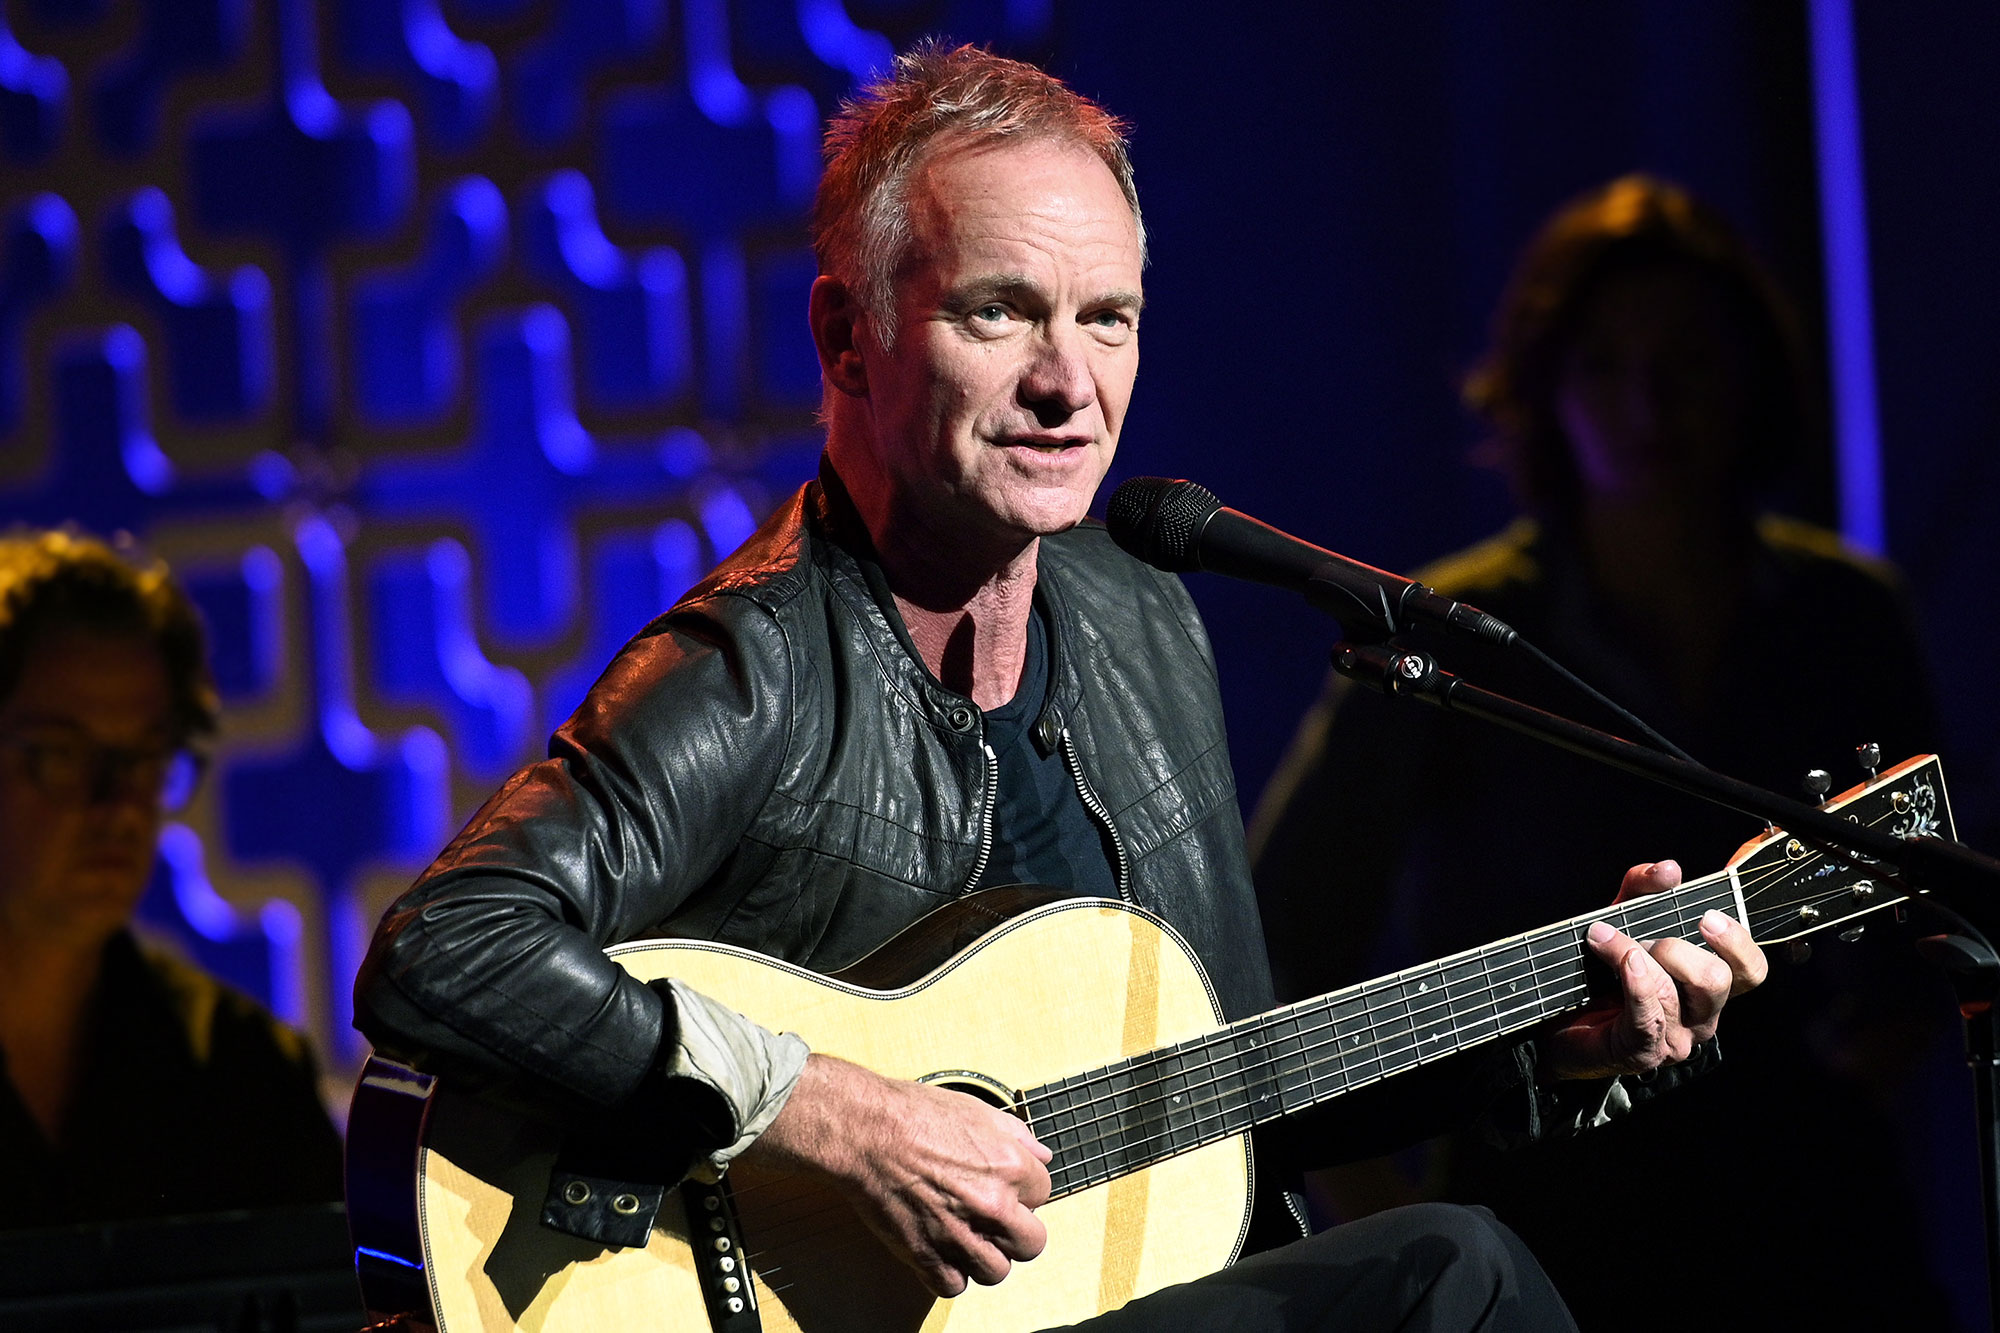 Sting performs live on stage iHeartRadio LIVE with Sting